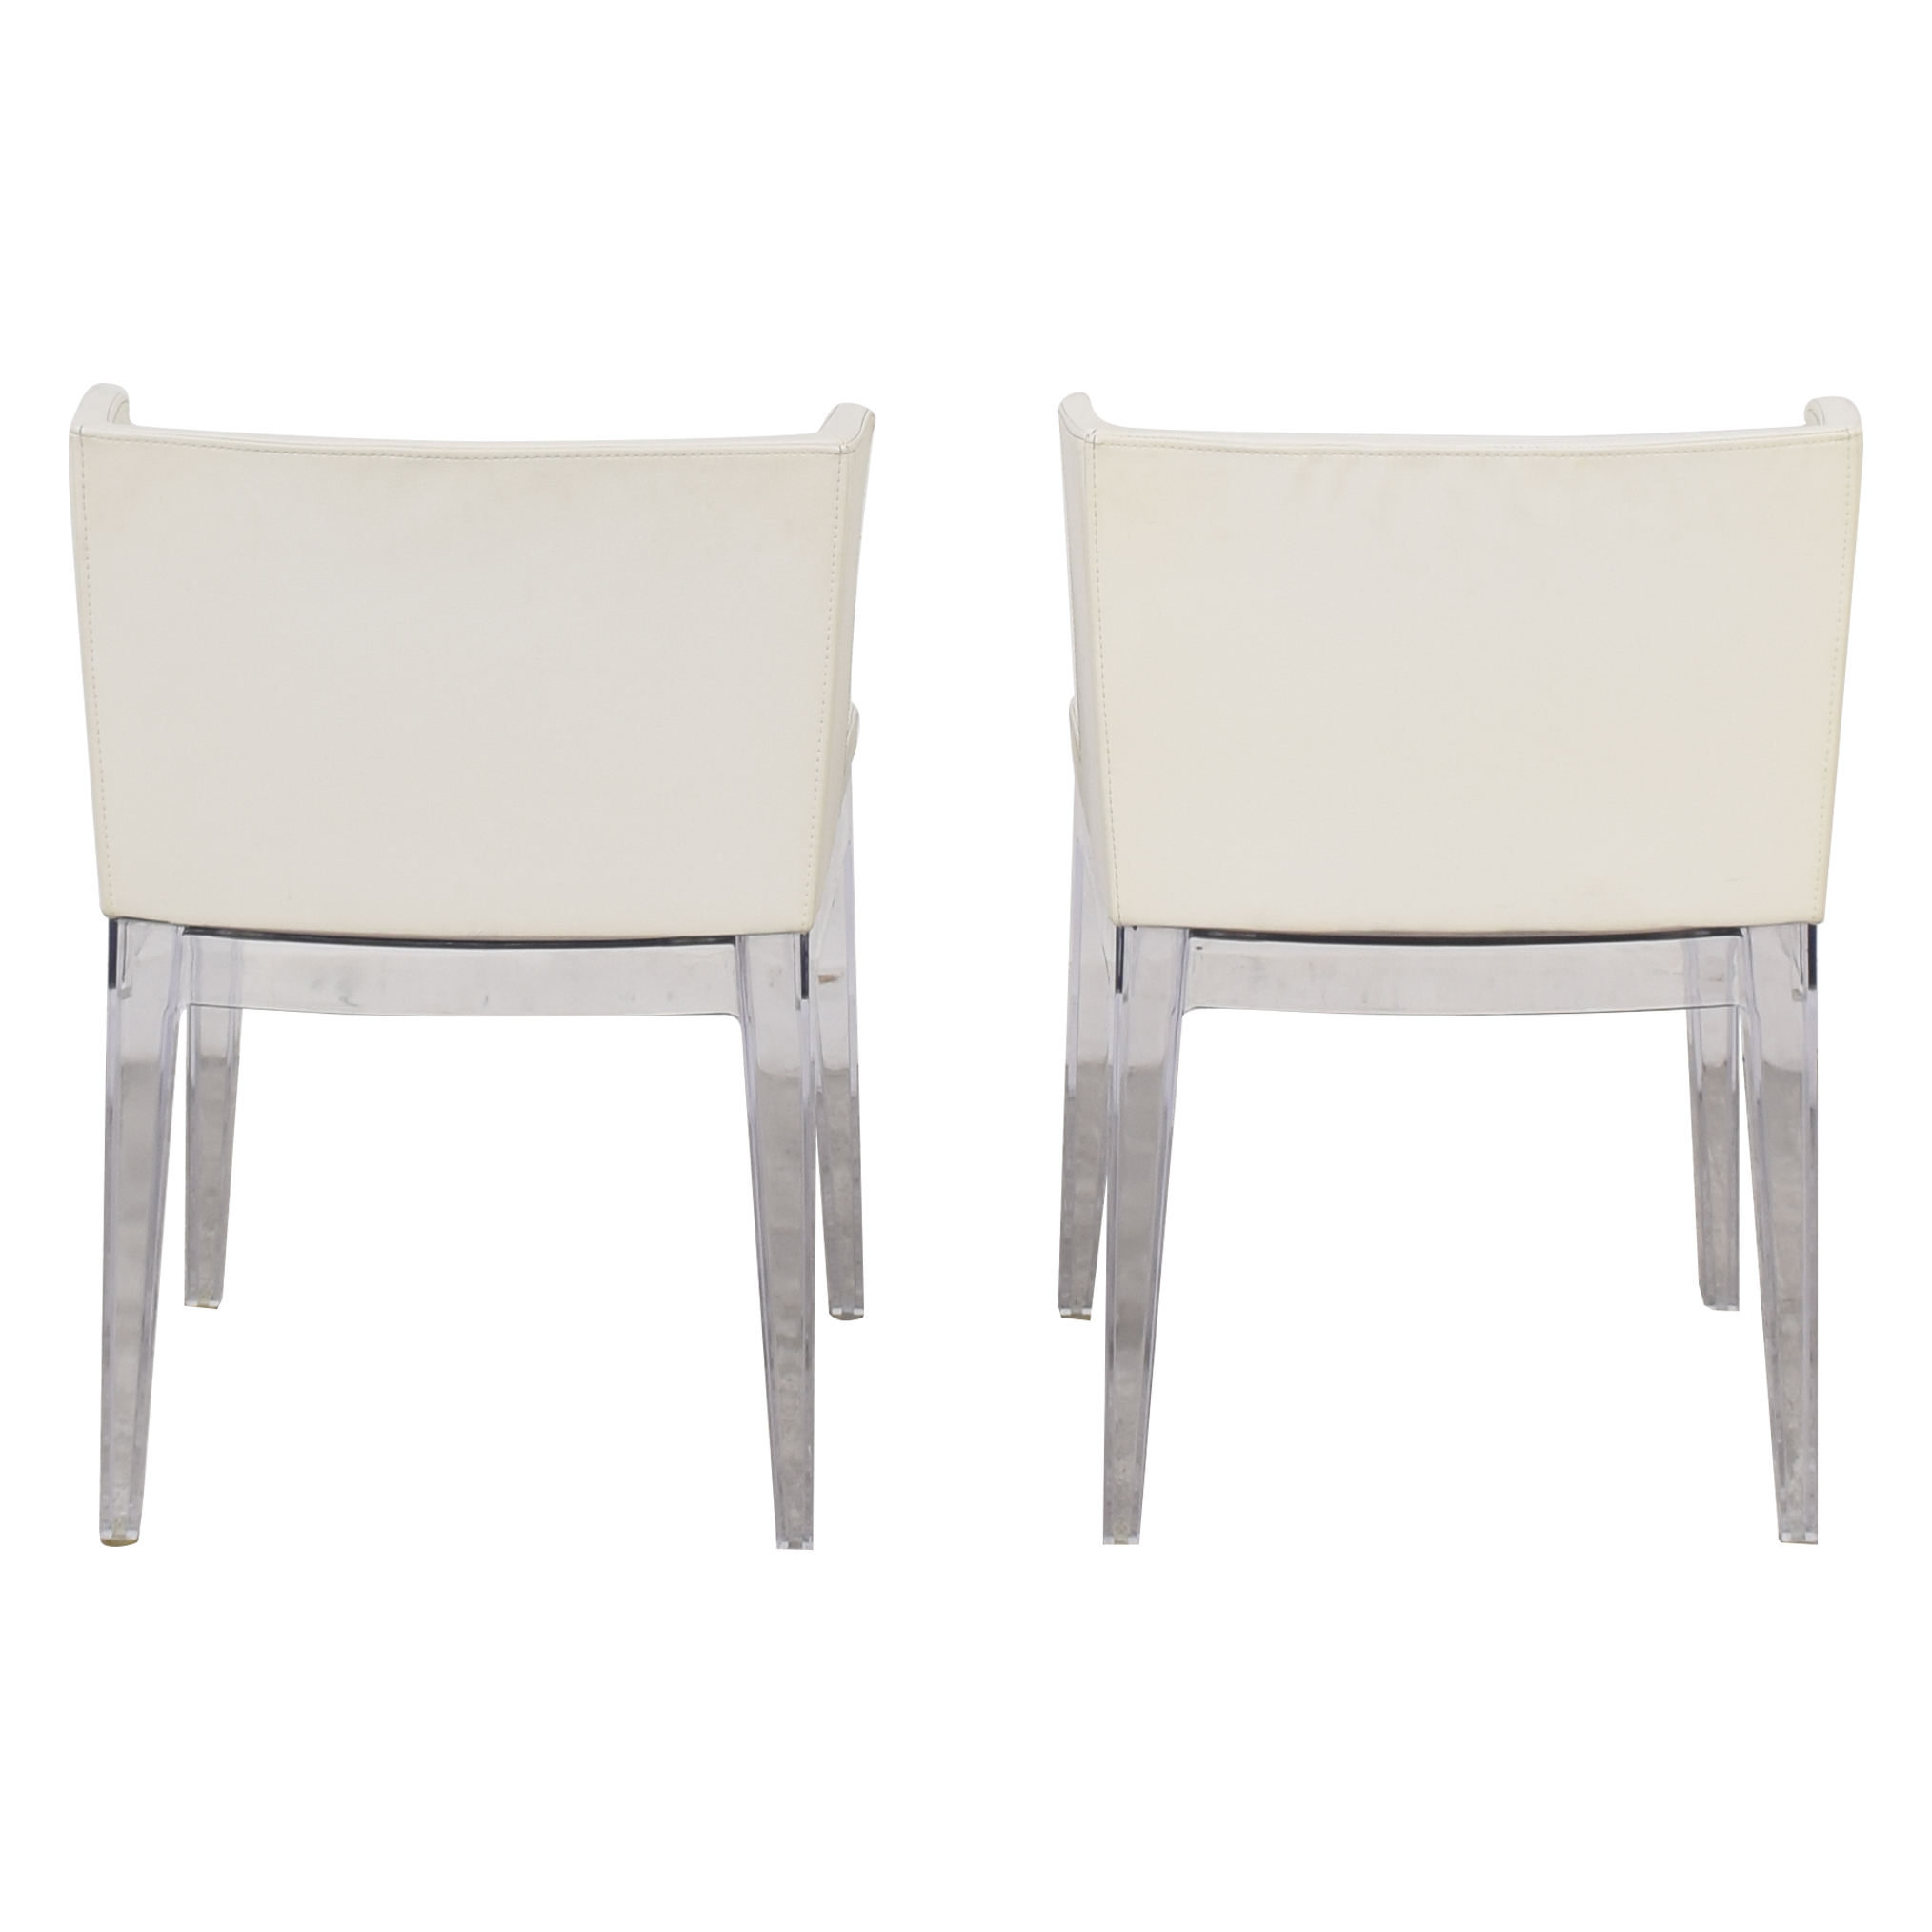 Mademoiselle-Style Chairs / Accent Chairs